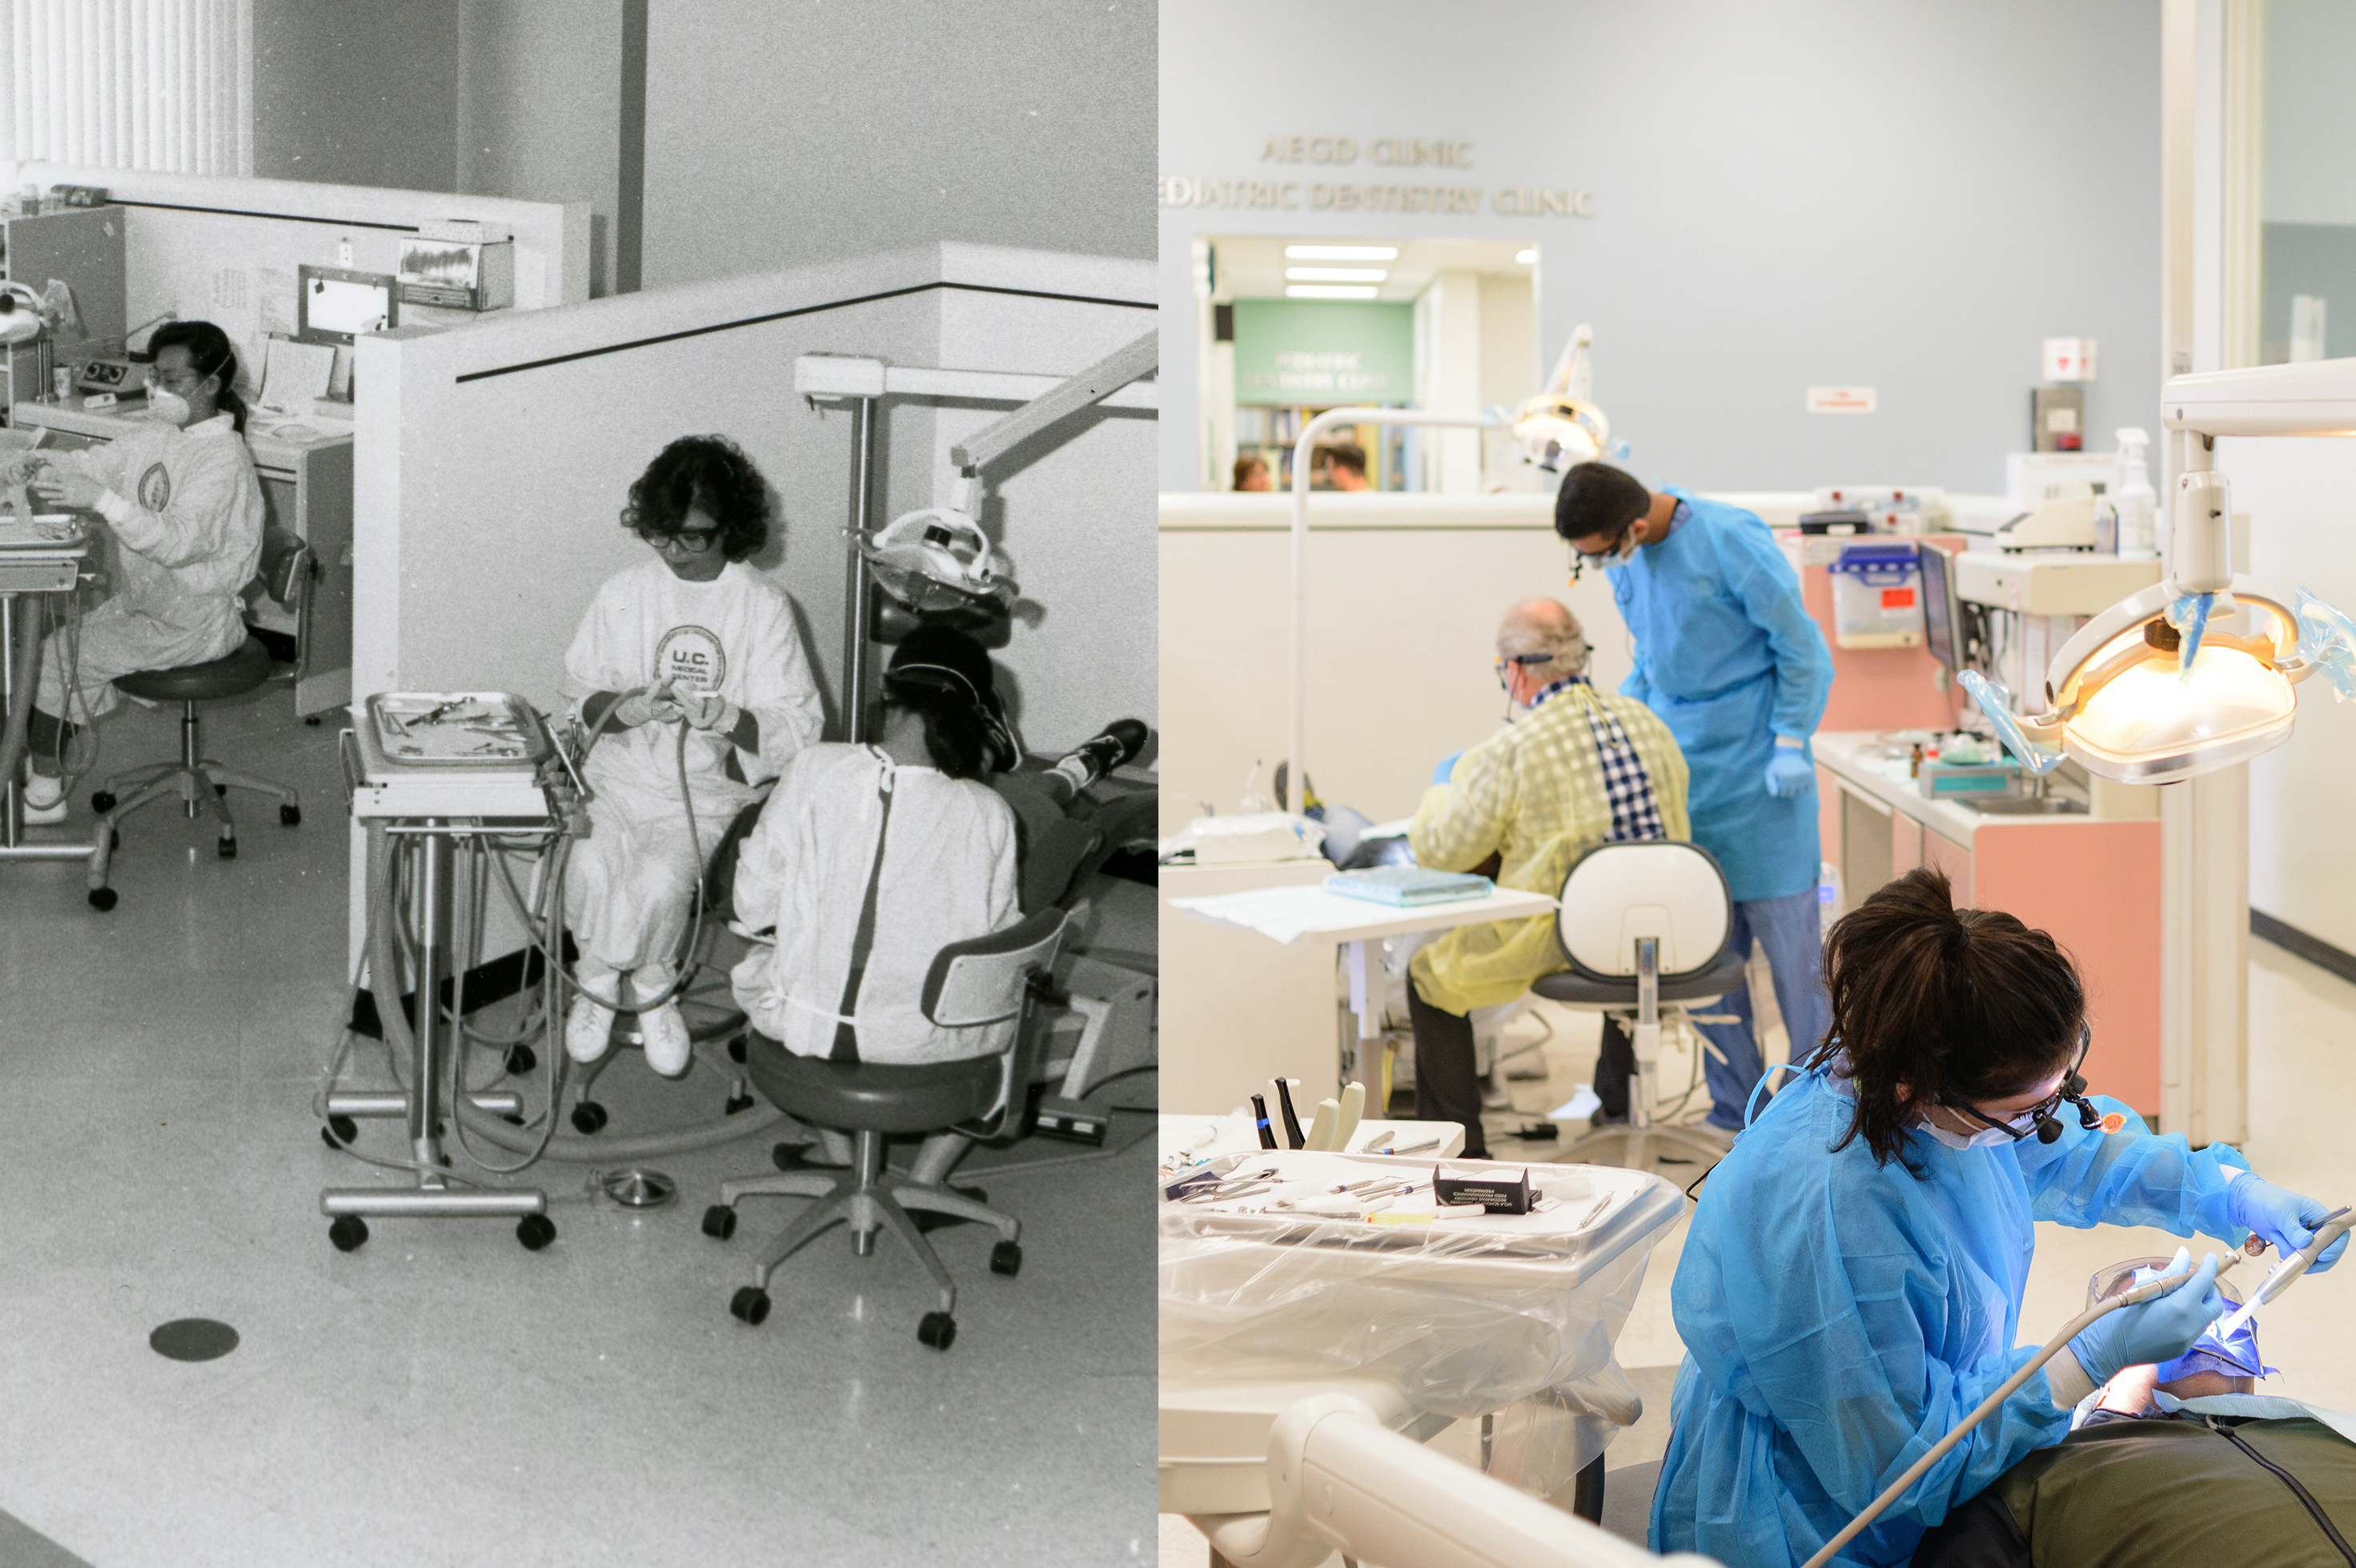 Then and now images of the UCLA Venice Dental Clinic